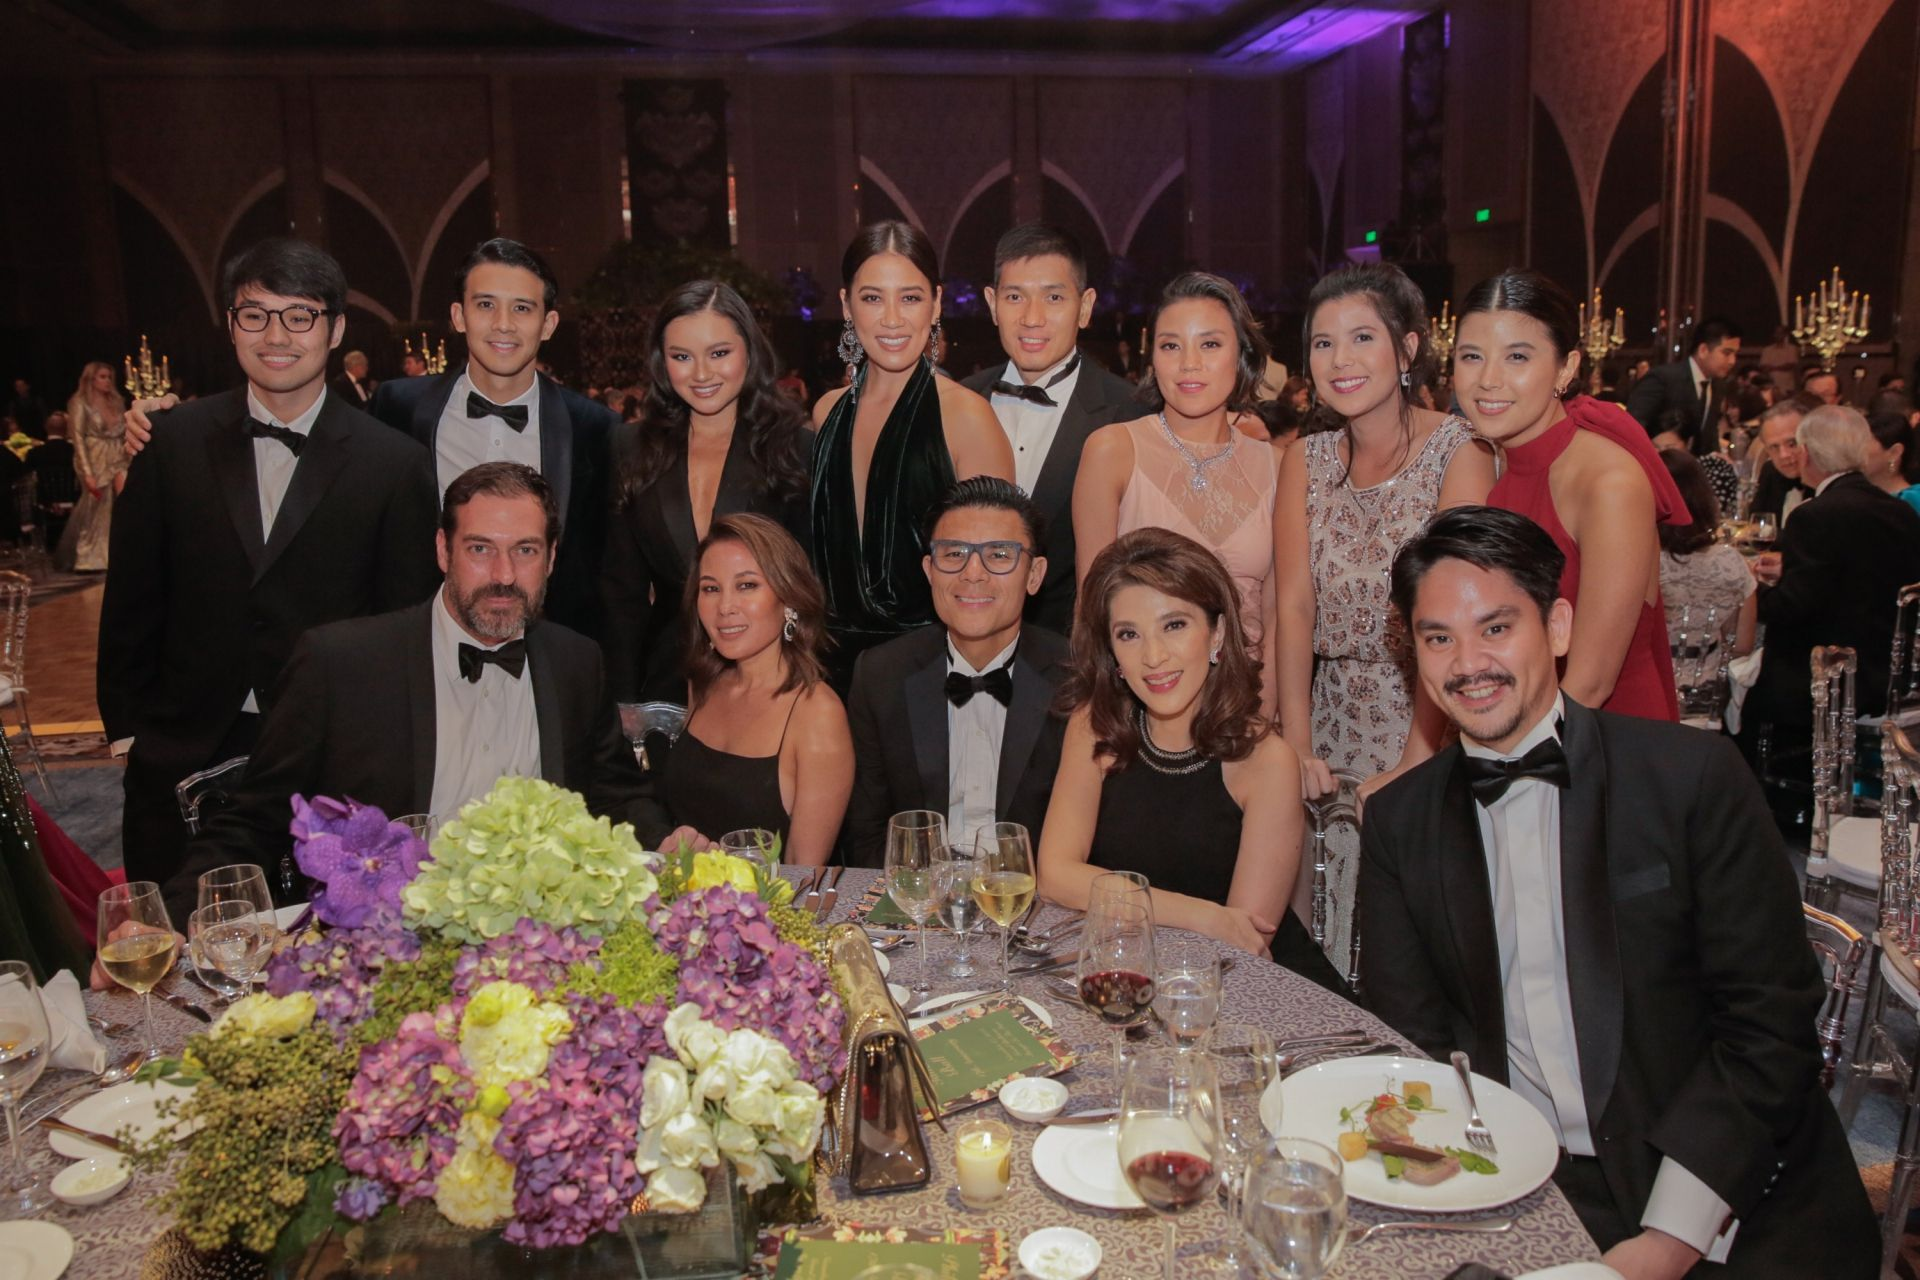 UPPER ROW: Pacho Sison, Miko De Los Reyes, Nikki Huang, Kathy and Mike Huang, Bea Reyes, Camille Tantoco, and Nicole De Los Reyes; LOWER ROW: Ricardo Preto, Katrina Lobregat, Donnie and Crickette Tantoco, and Das Reyes